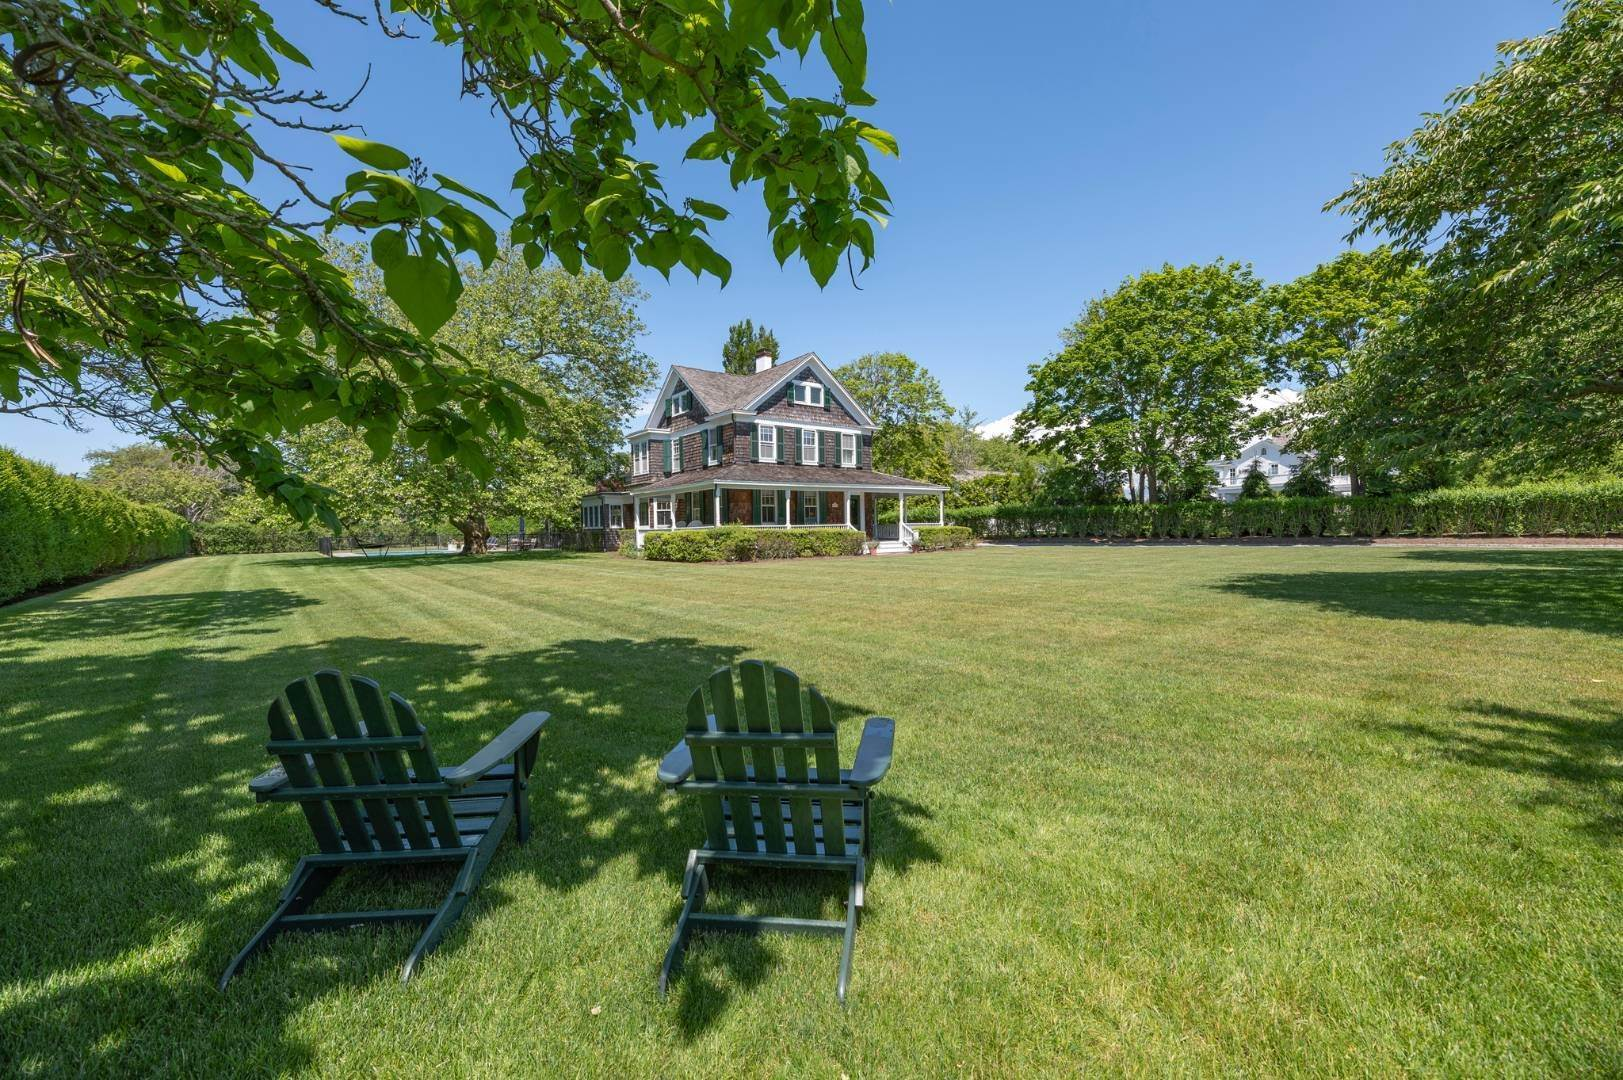 Single Family Home at Westhampton Beach Rental With A Heated Pool 19 Bayfield Lane, Westhampton Beach Village, NY 11978